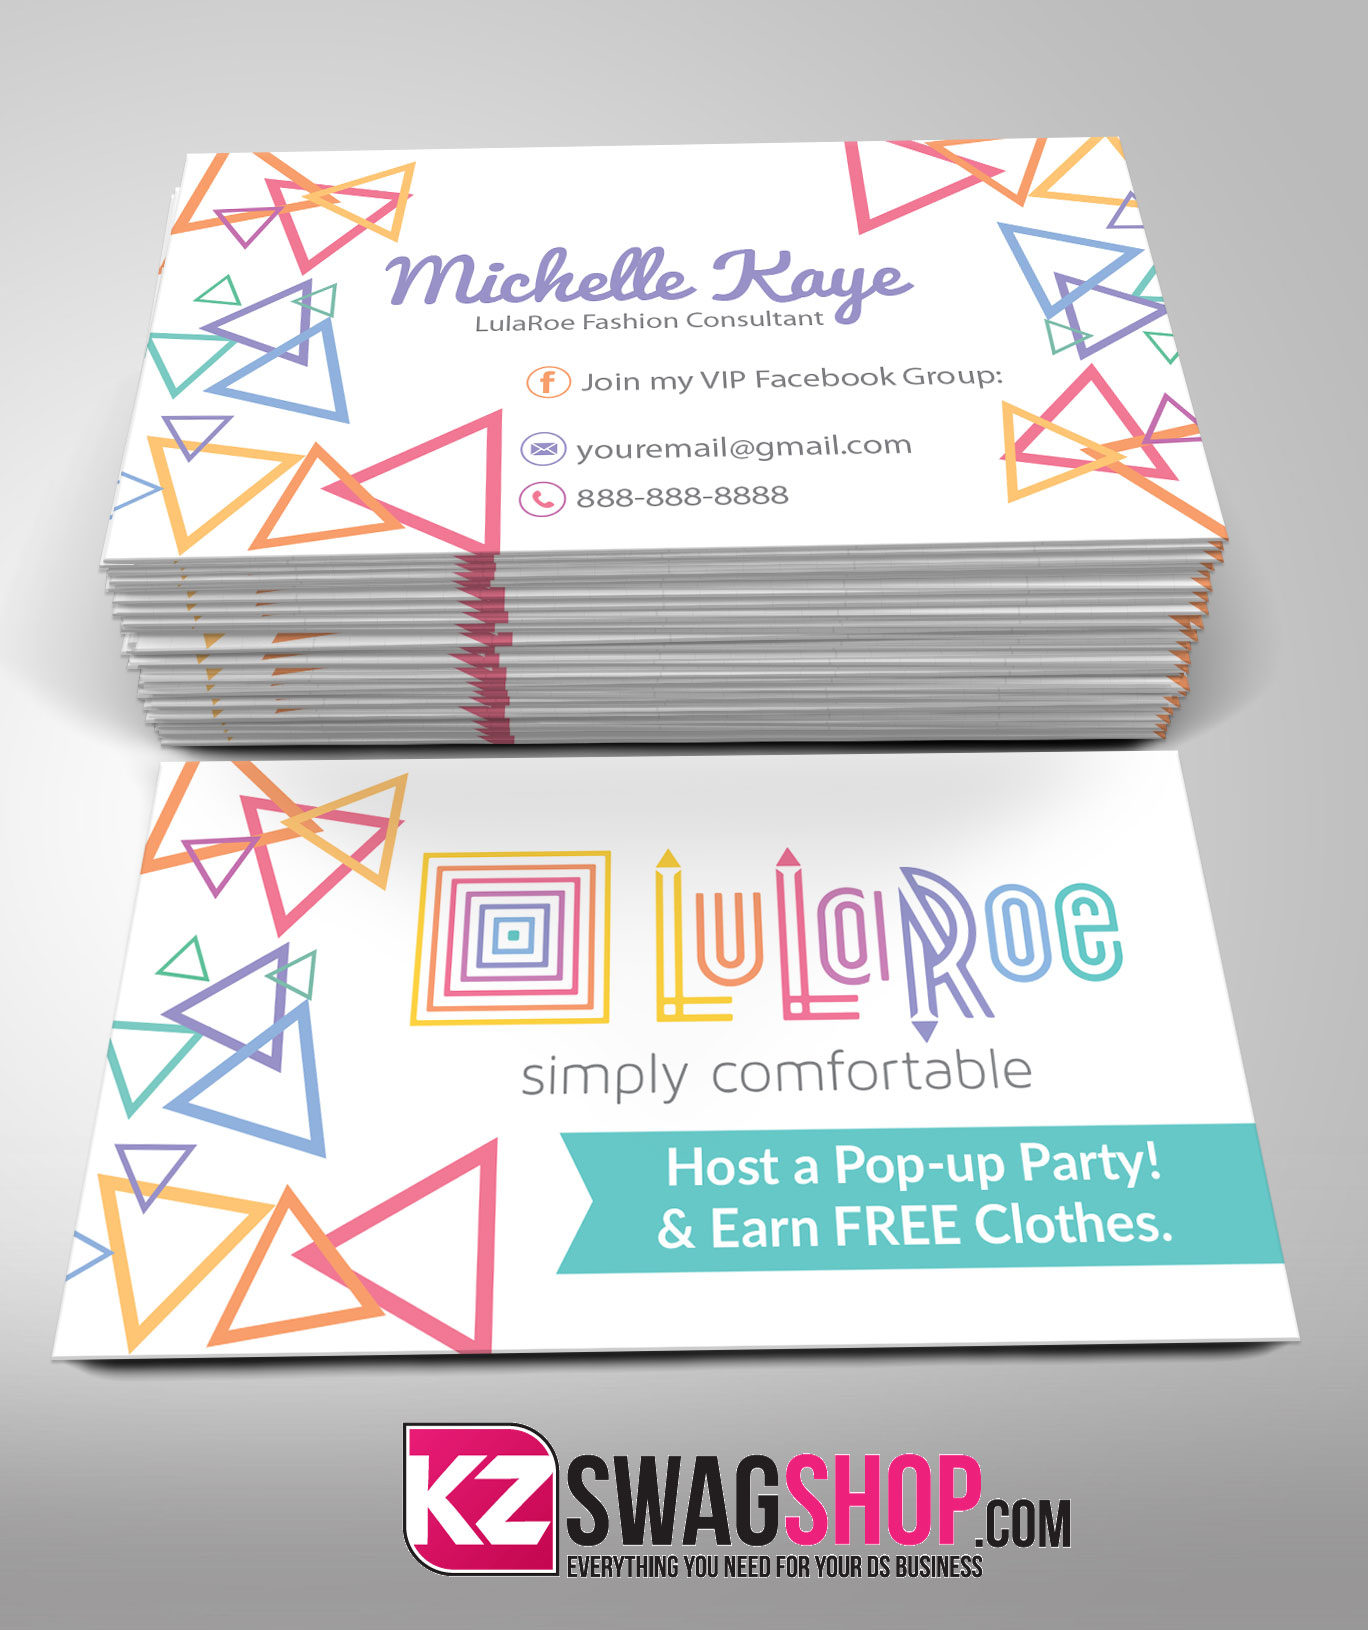 Lularoe business cards 4 kz creative services online store lularoe business cards 4 reheart Choice Image